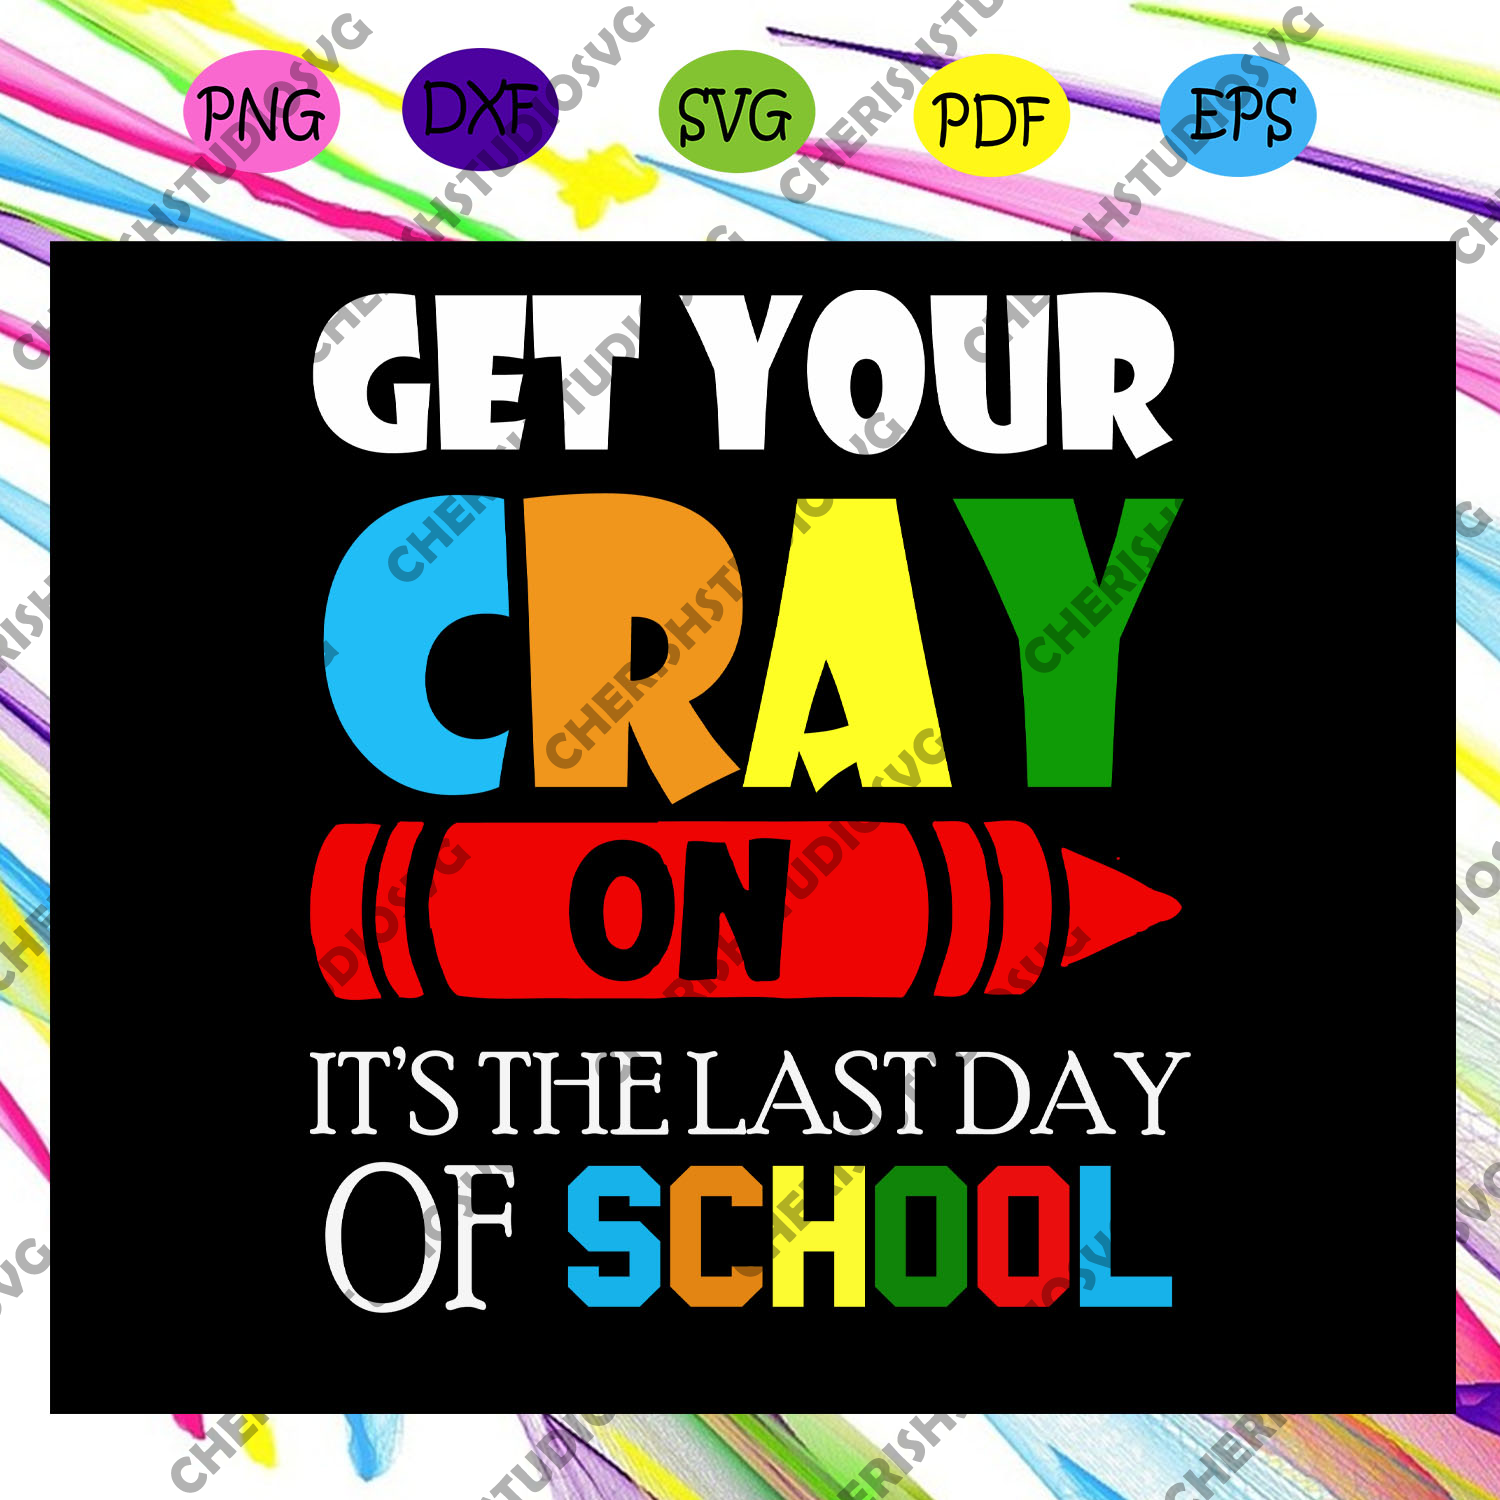 Get your cray on it's the 100th day of school,Happy 100th day of school,100th day of school svg, 100 days of school,svg cricut, silhouette svg files, cricut svg, silhouette svg, svg designs, vinyl svg